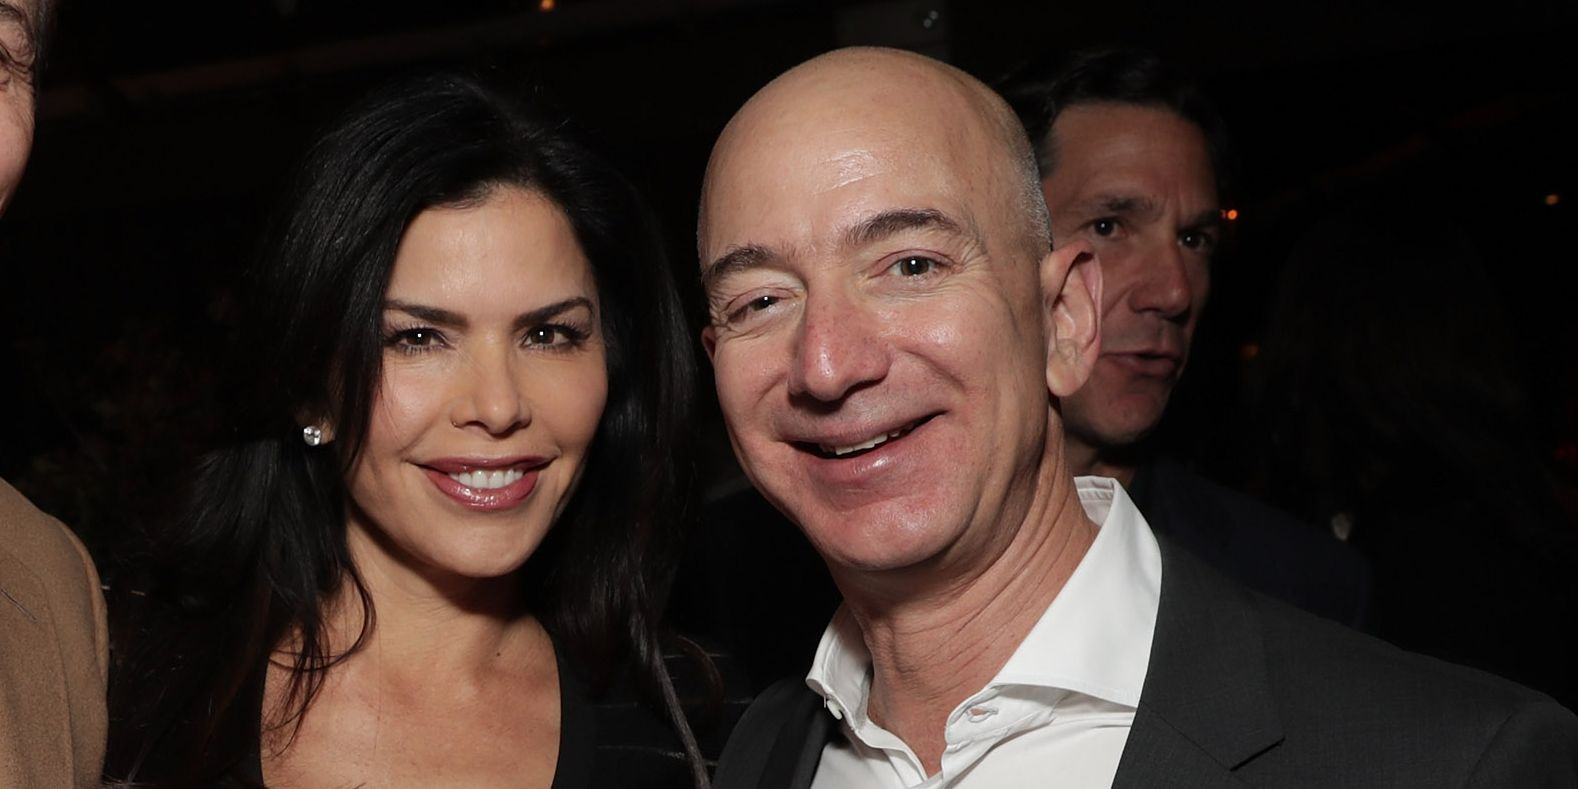 Jeff Bezos and Matt Damon's 'Manchester By The Sea' Holiday Party